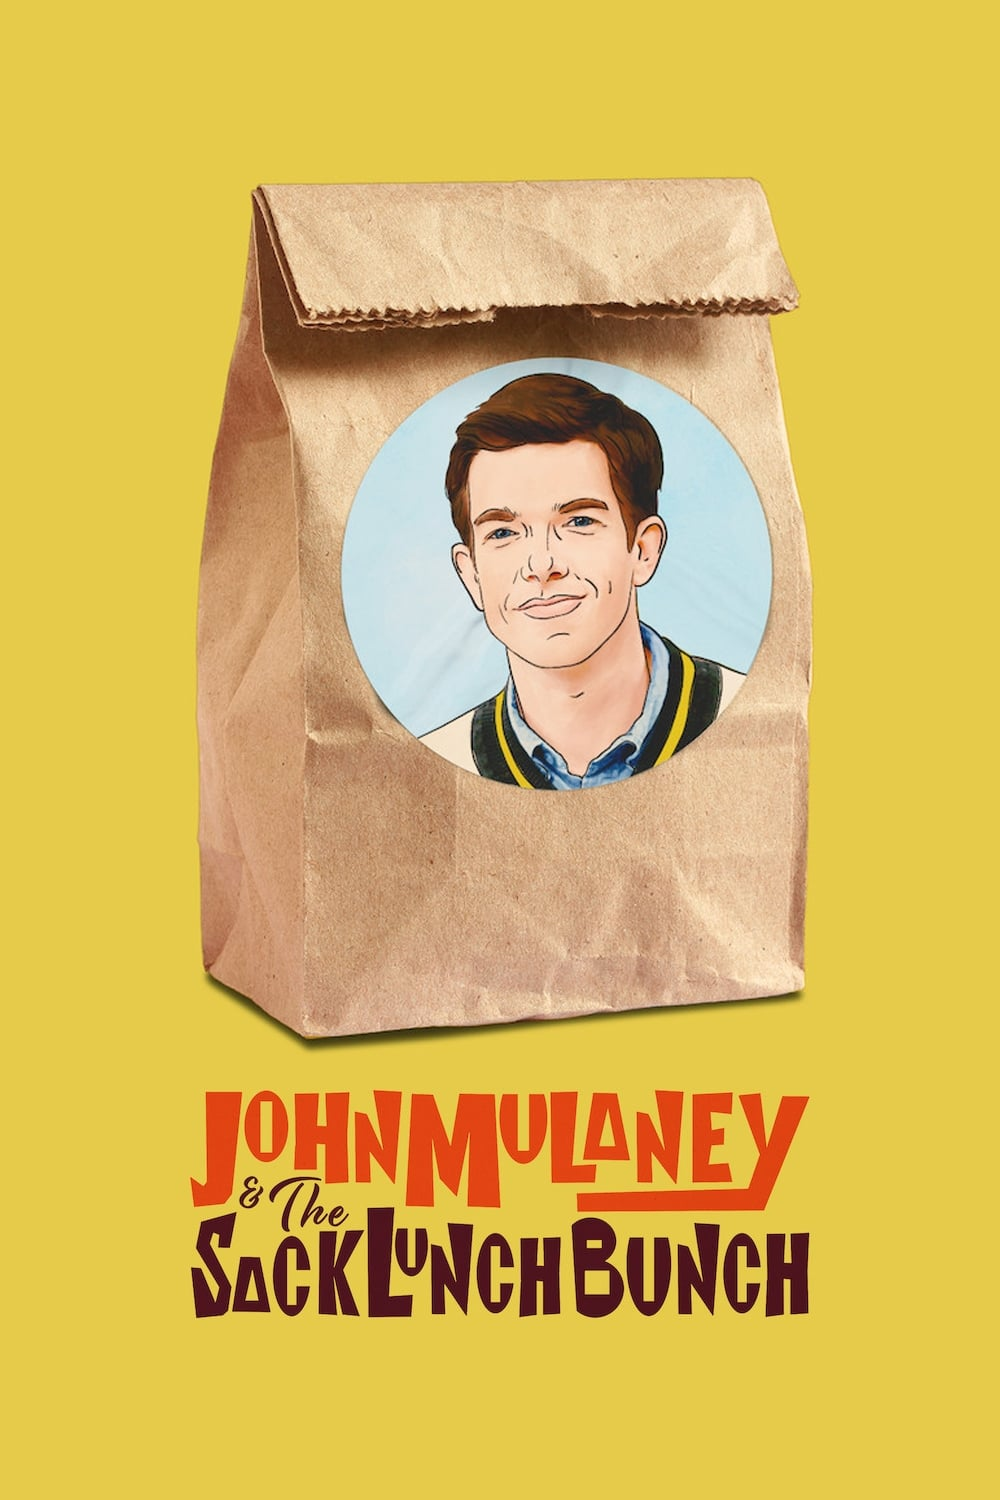 John Mulaney & The Sack Lunch Bunch (2019)